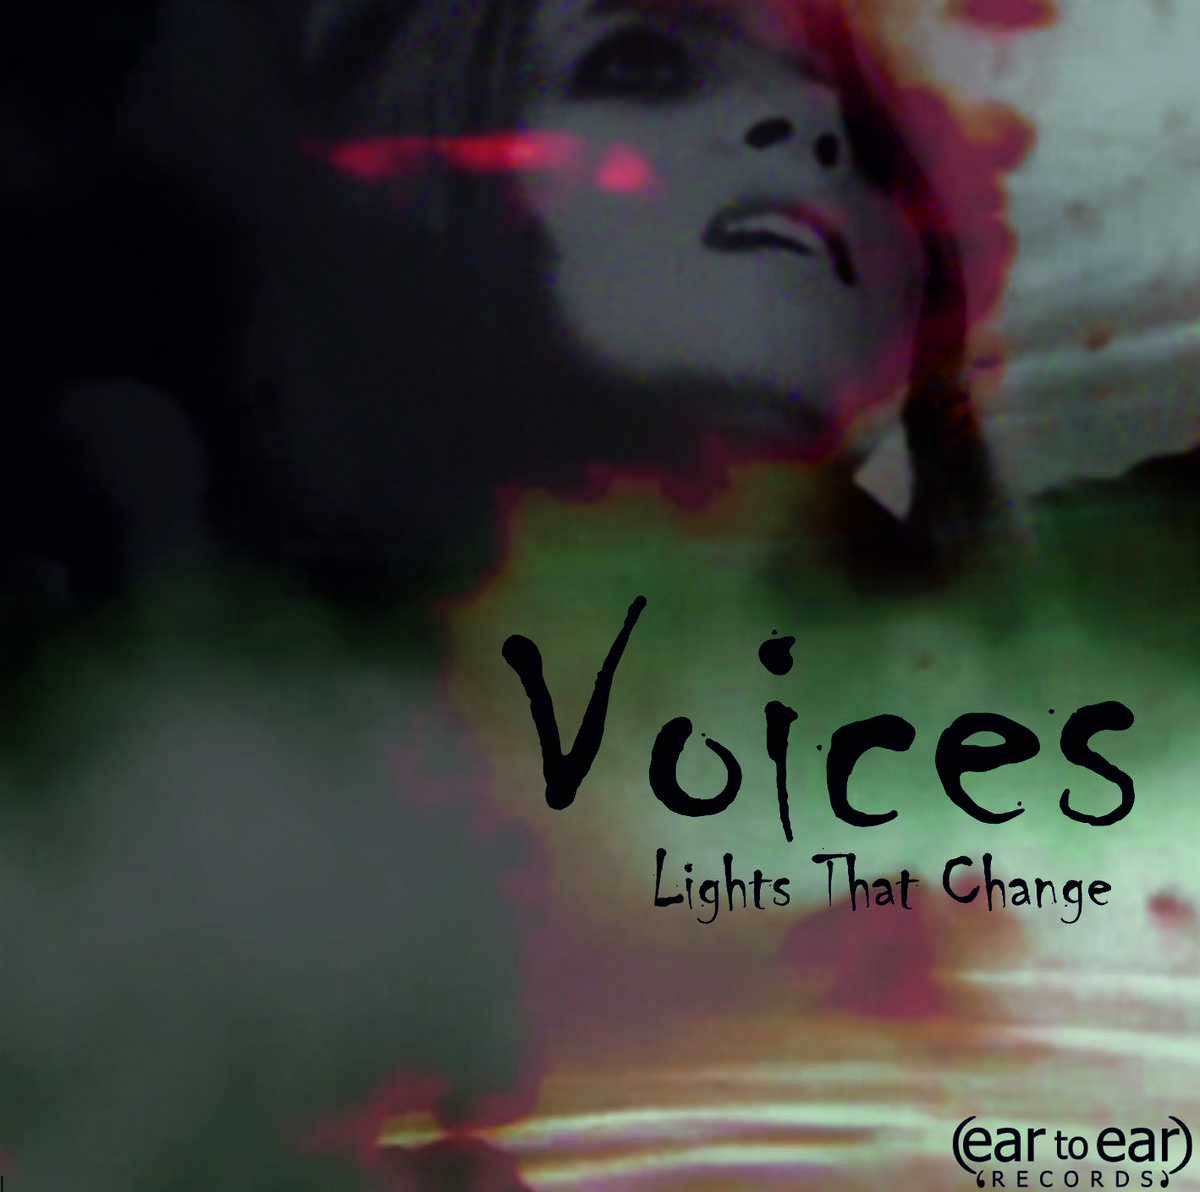 Lights Voices